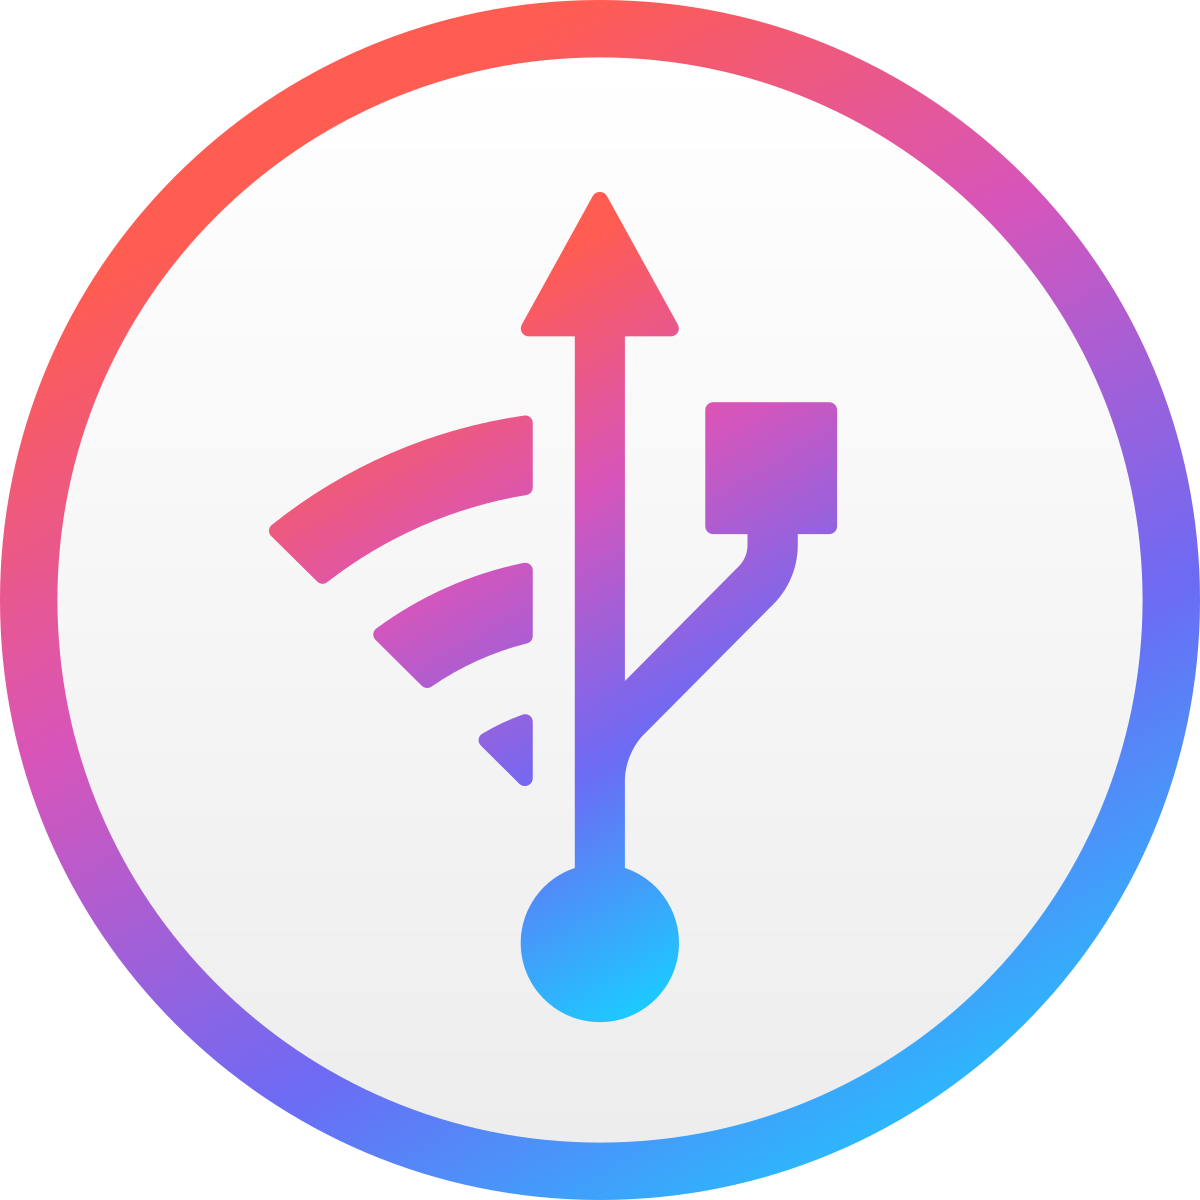 iMazing Crack 2.12.4 MAC With Activation Code Full Version